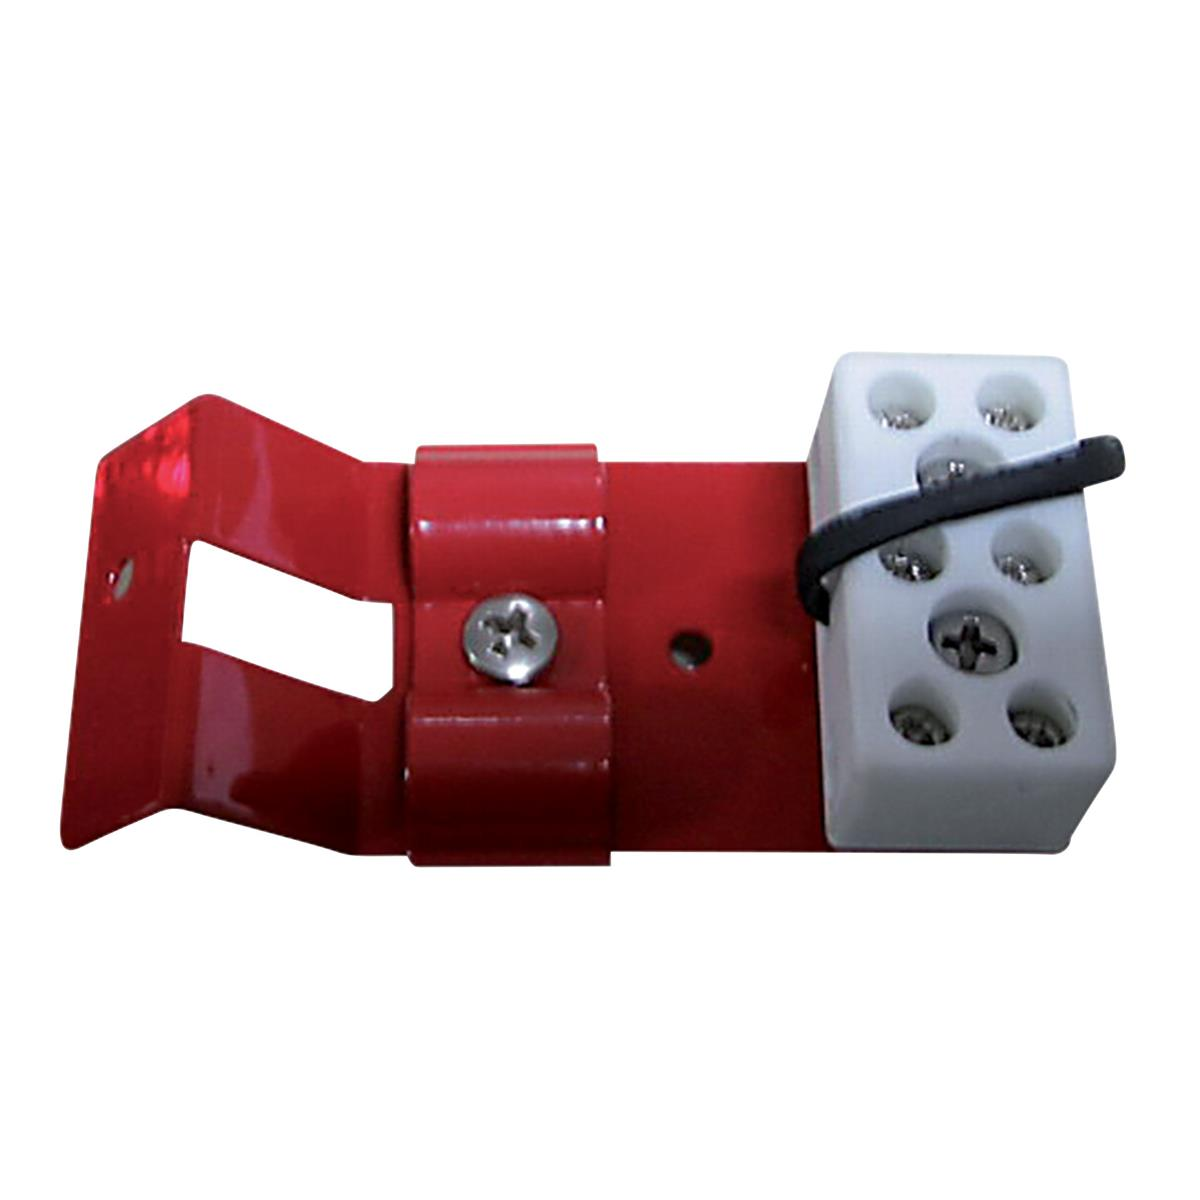 RCF AC 1503 Ceramic terminal block with thermal fuse